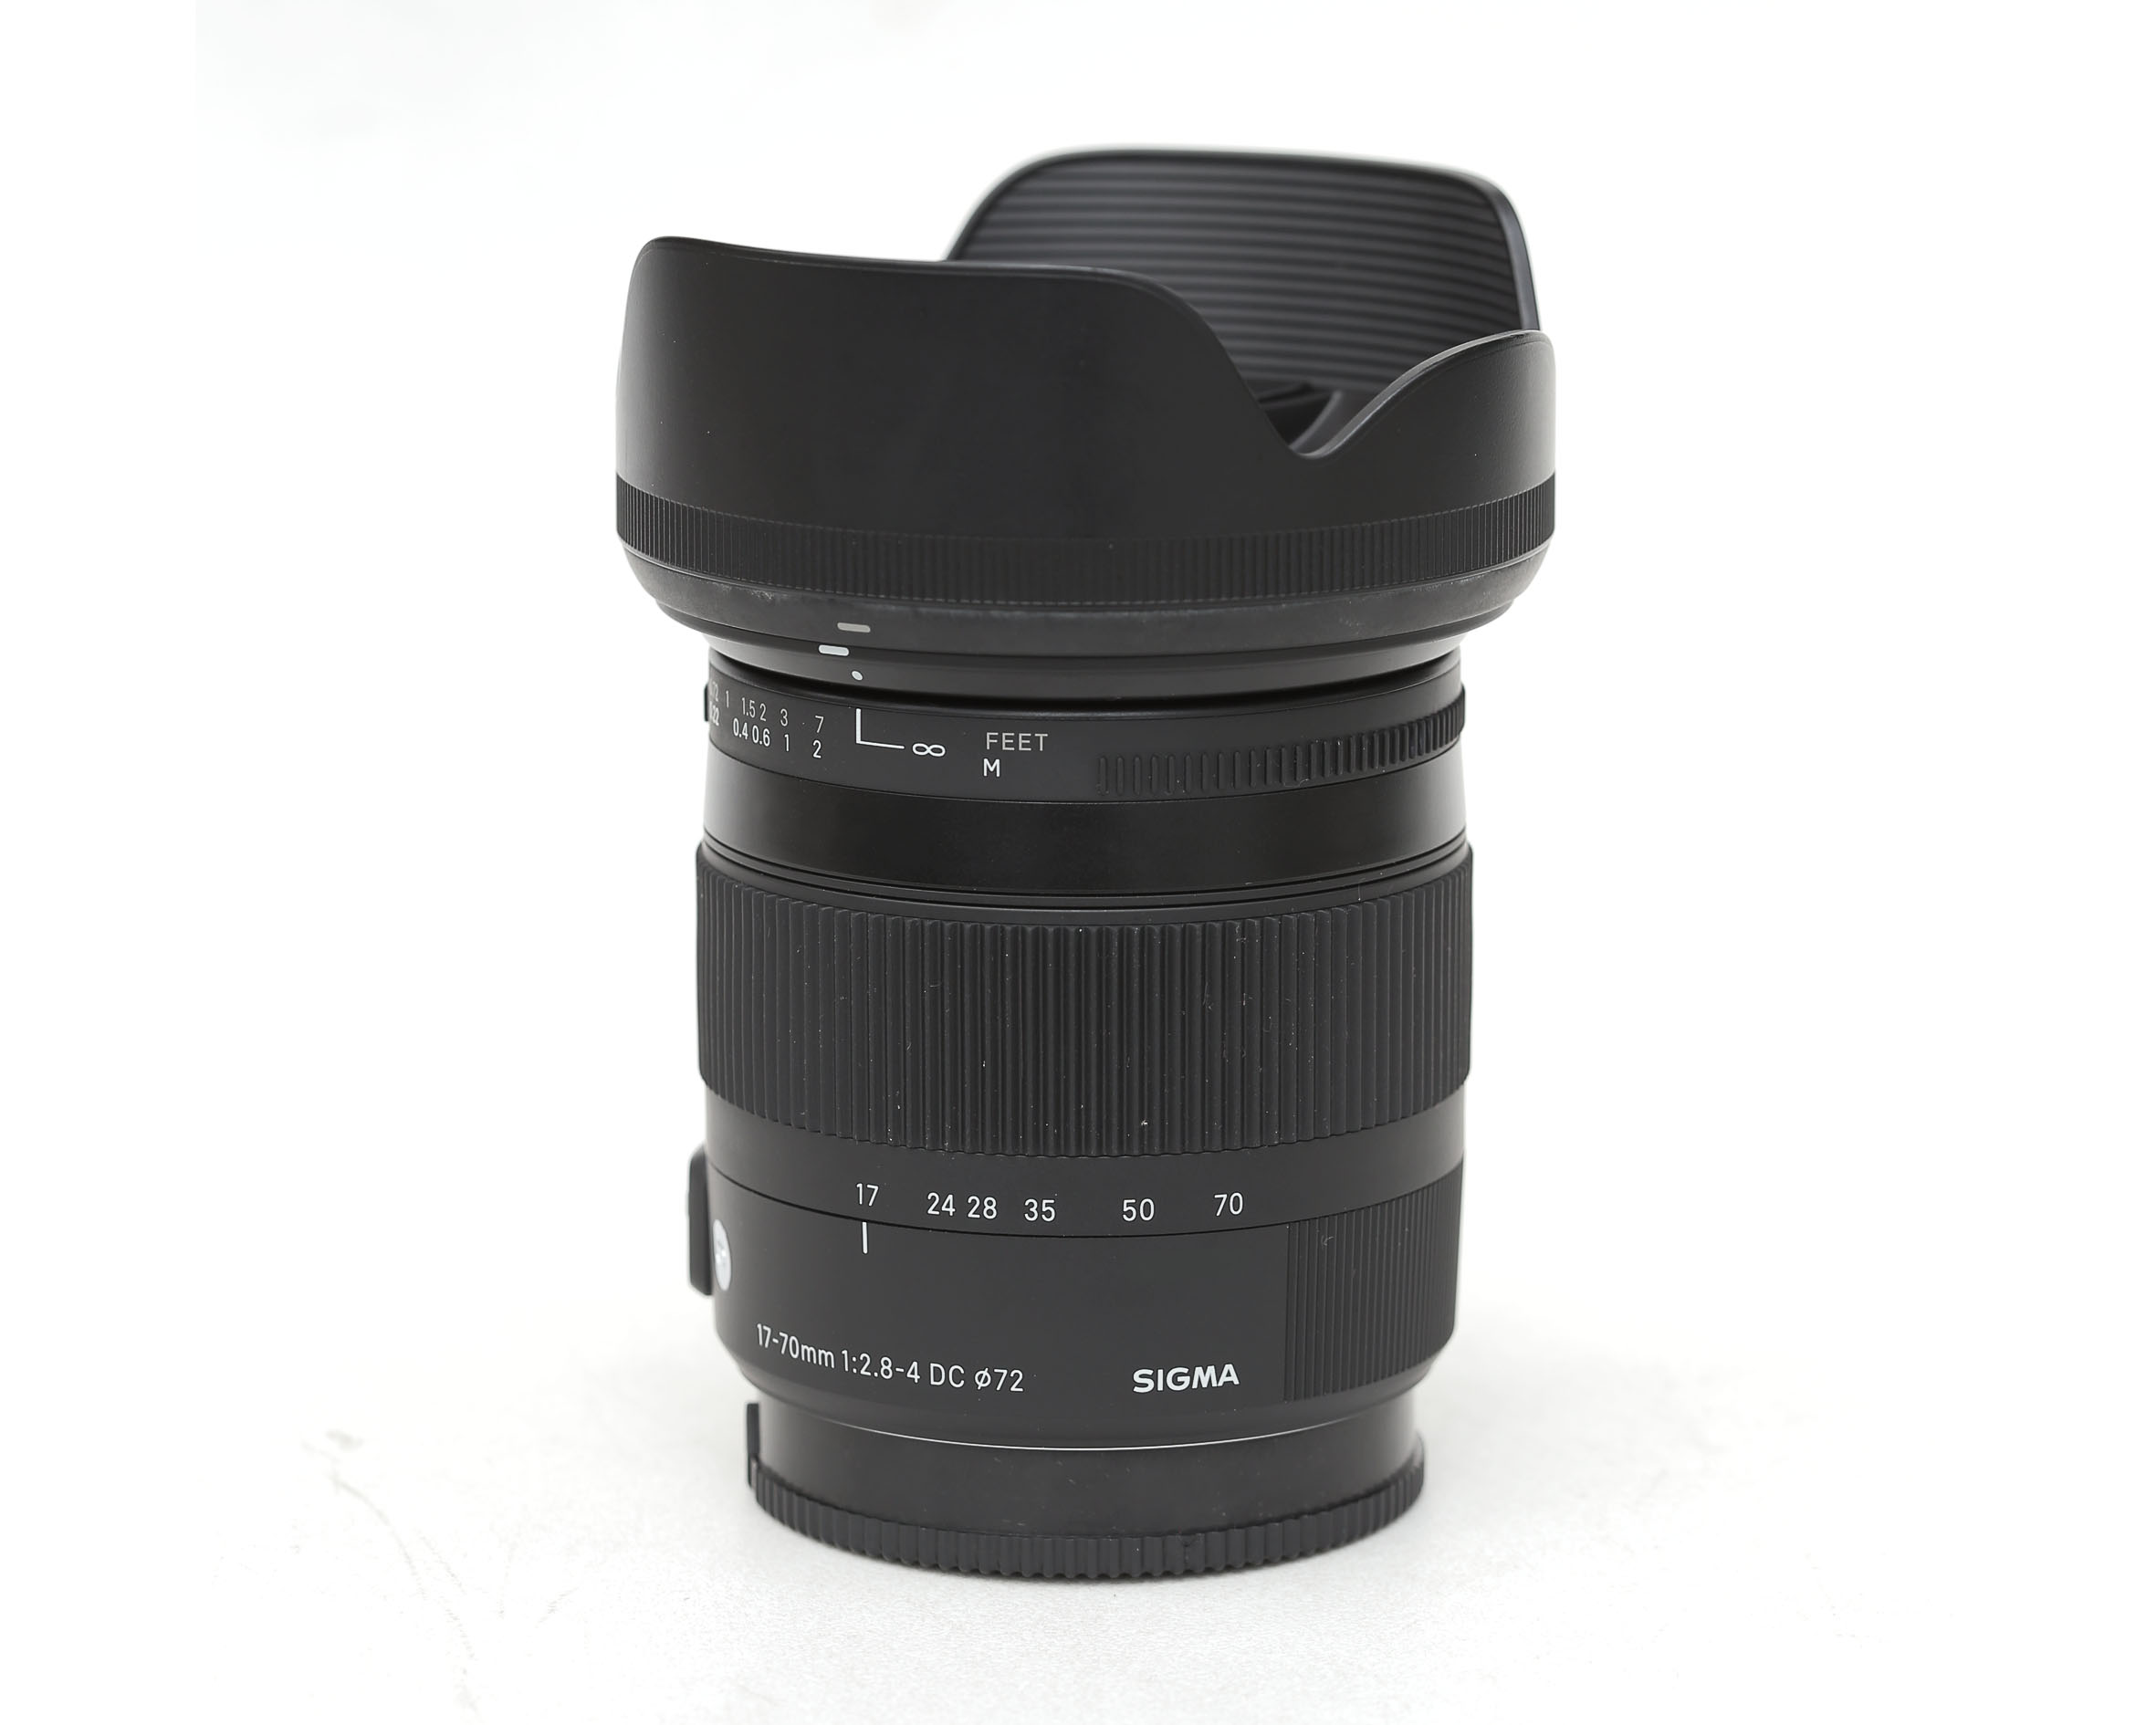 Sigma 17-70mm f/2.8-4 DC HSM for Sony Amount